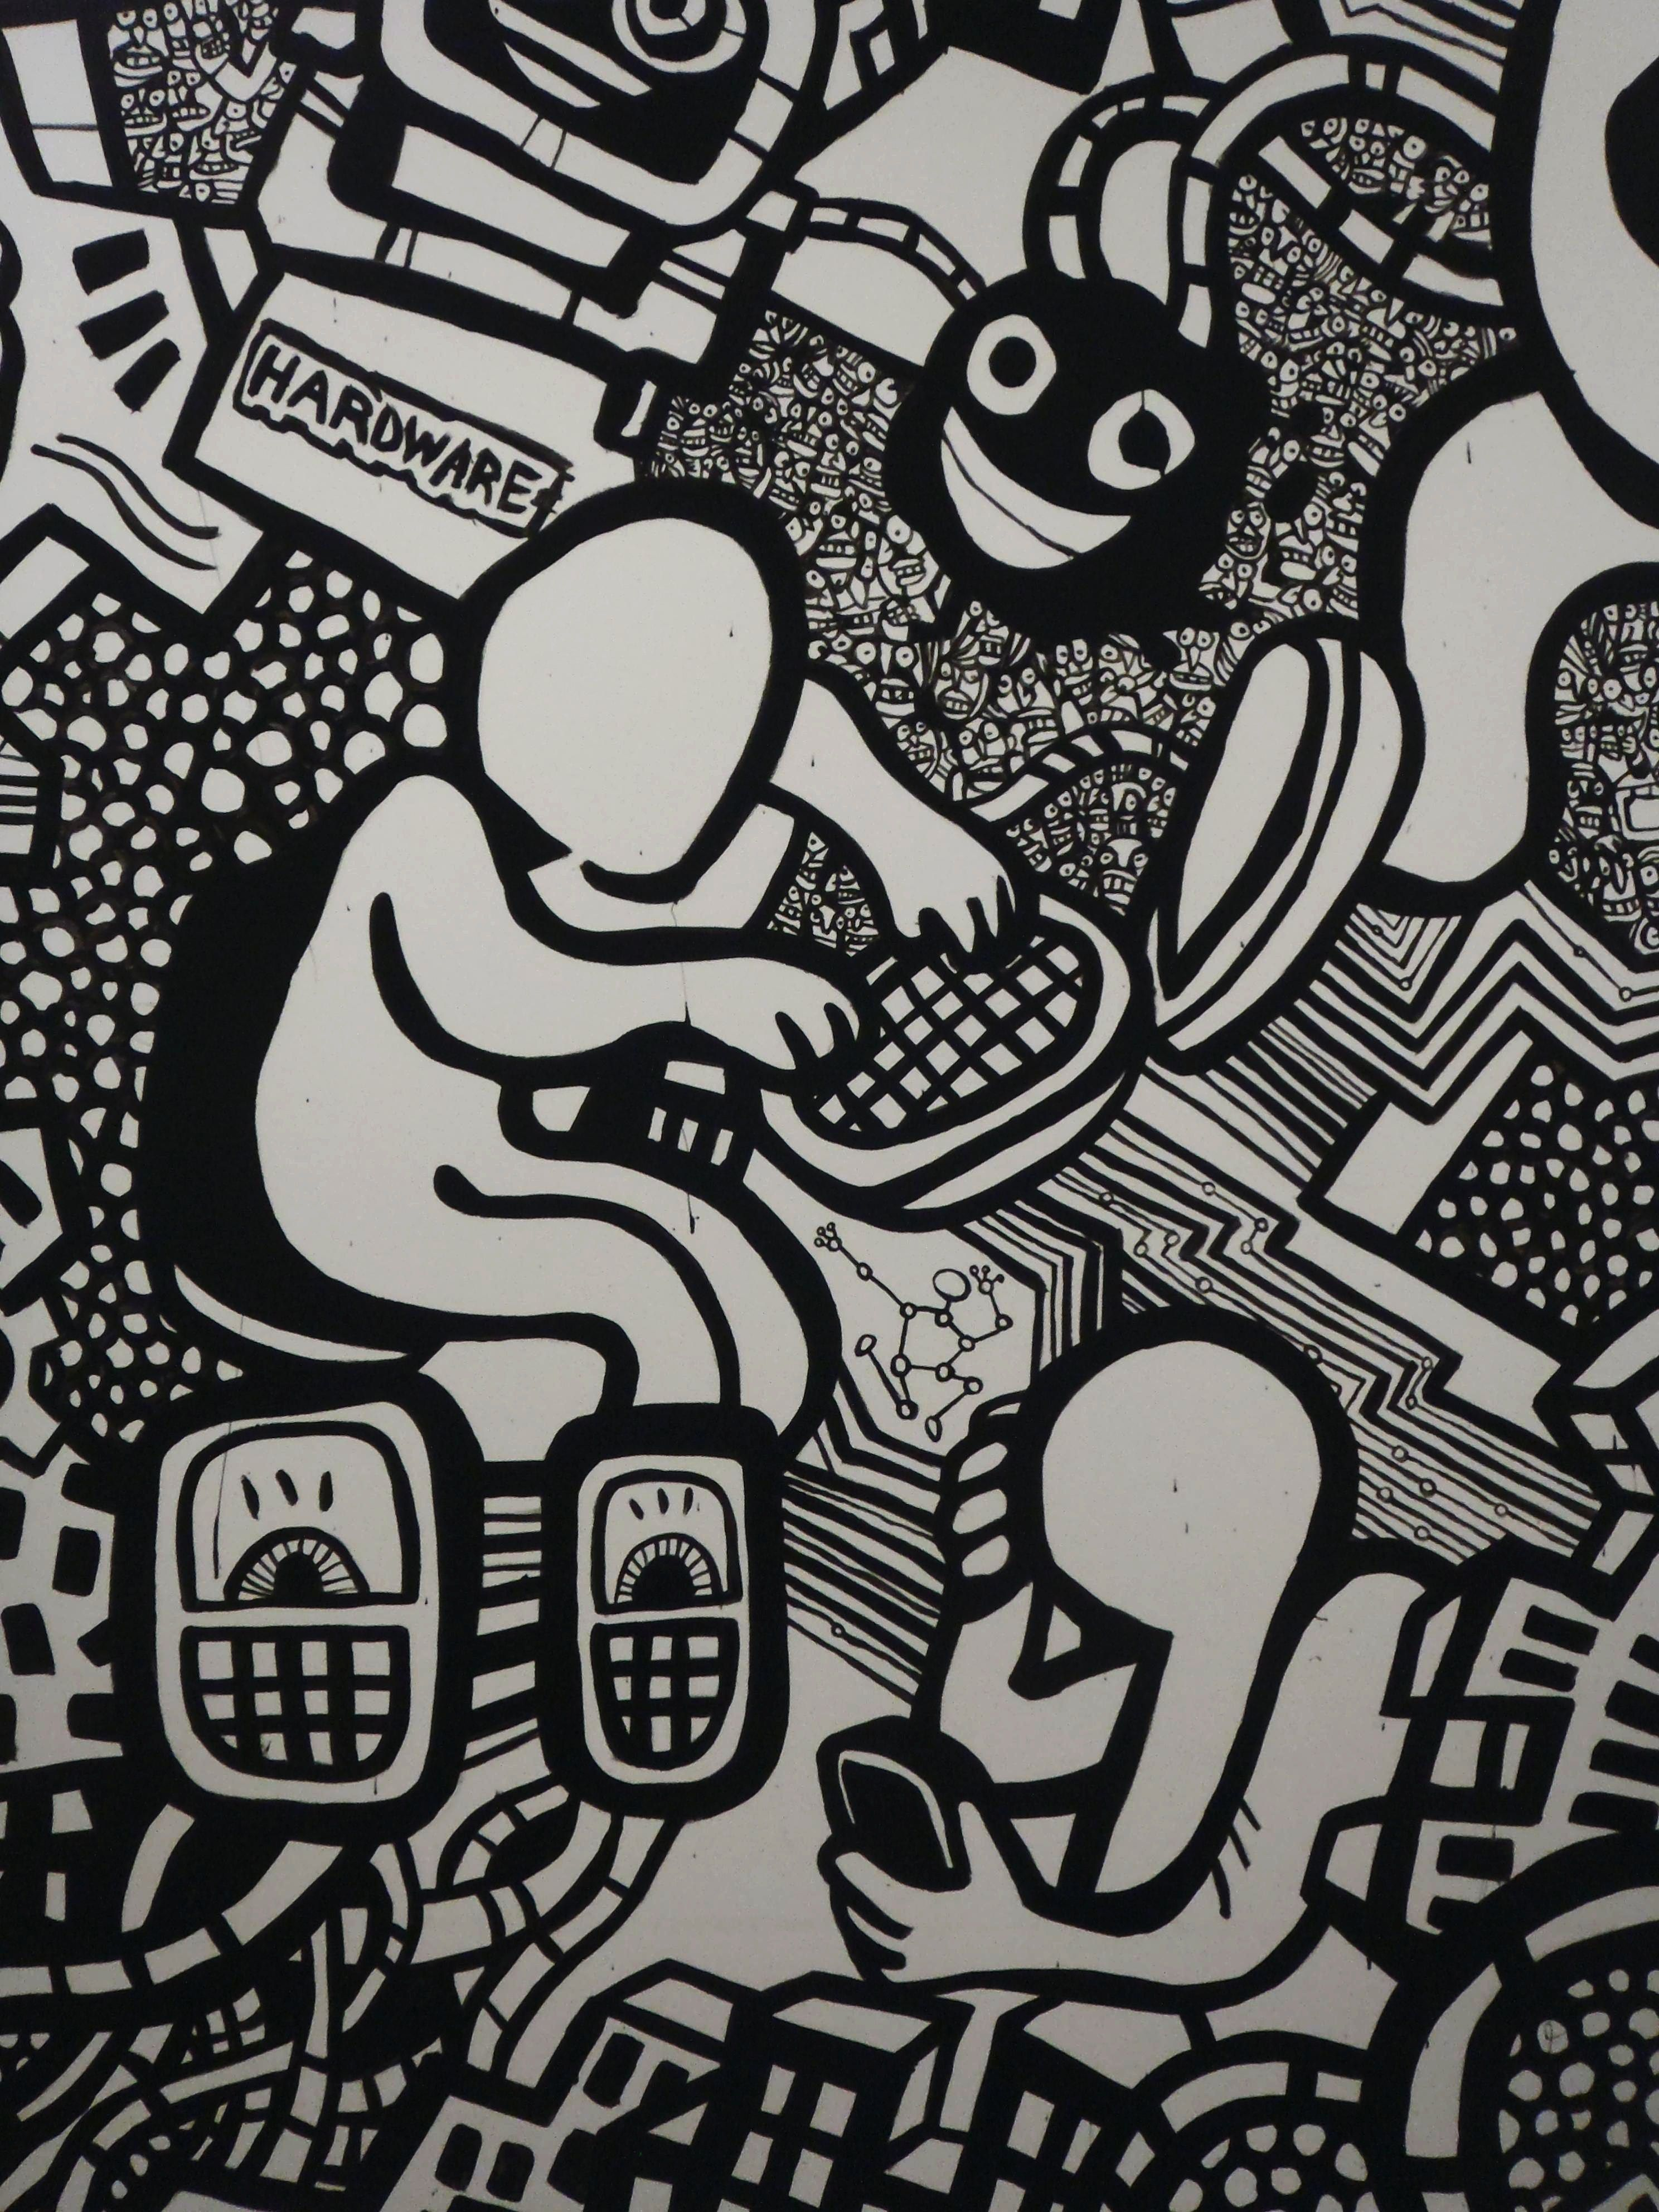 Black and white illustrated mural black and white art graffiti murals heyapathy surreal comics